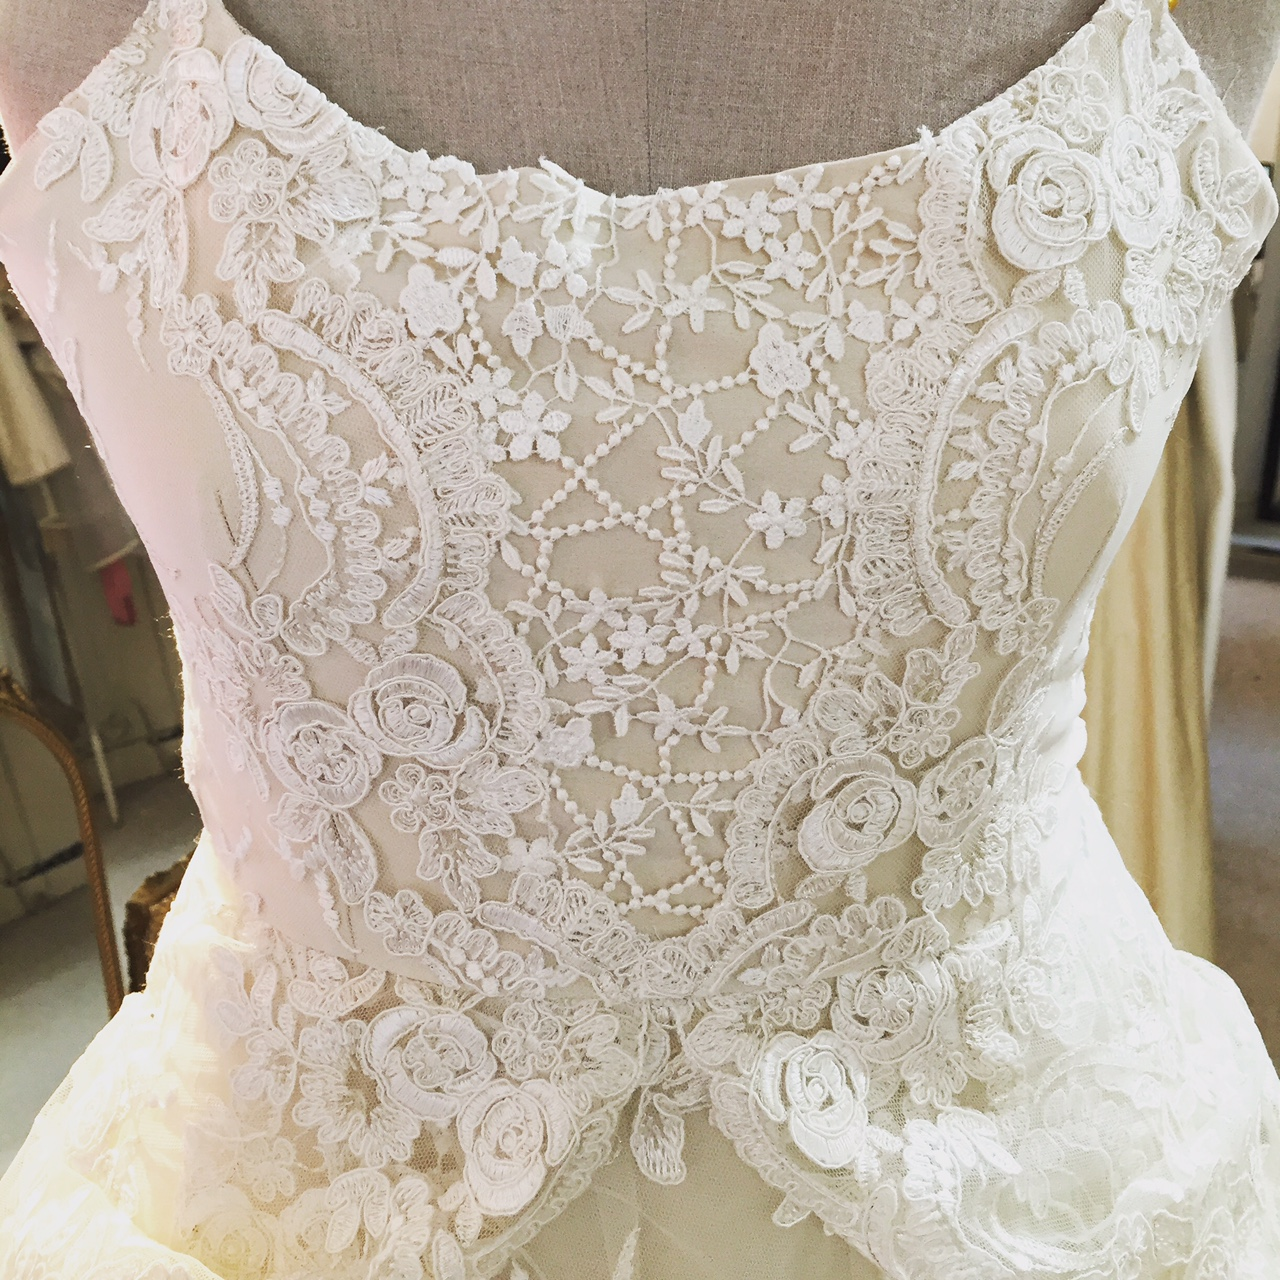 At My little Wedding Shop, we like to use lace in a way that creates a beautiful silhouette or accentuates certain parts of the design. This bohemian inspired creation for our bride Sarah is no exception! By combining the finest sandwash silk with 5 different laces, we ensured that Sarah's gown was not only truly unique, but even more than she had dreamed of! In this close up shot, it really highlights how the lace draws your eye to the smallest point of your figure and back out again over the hips.